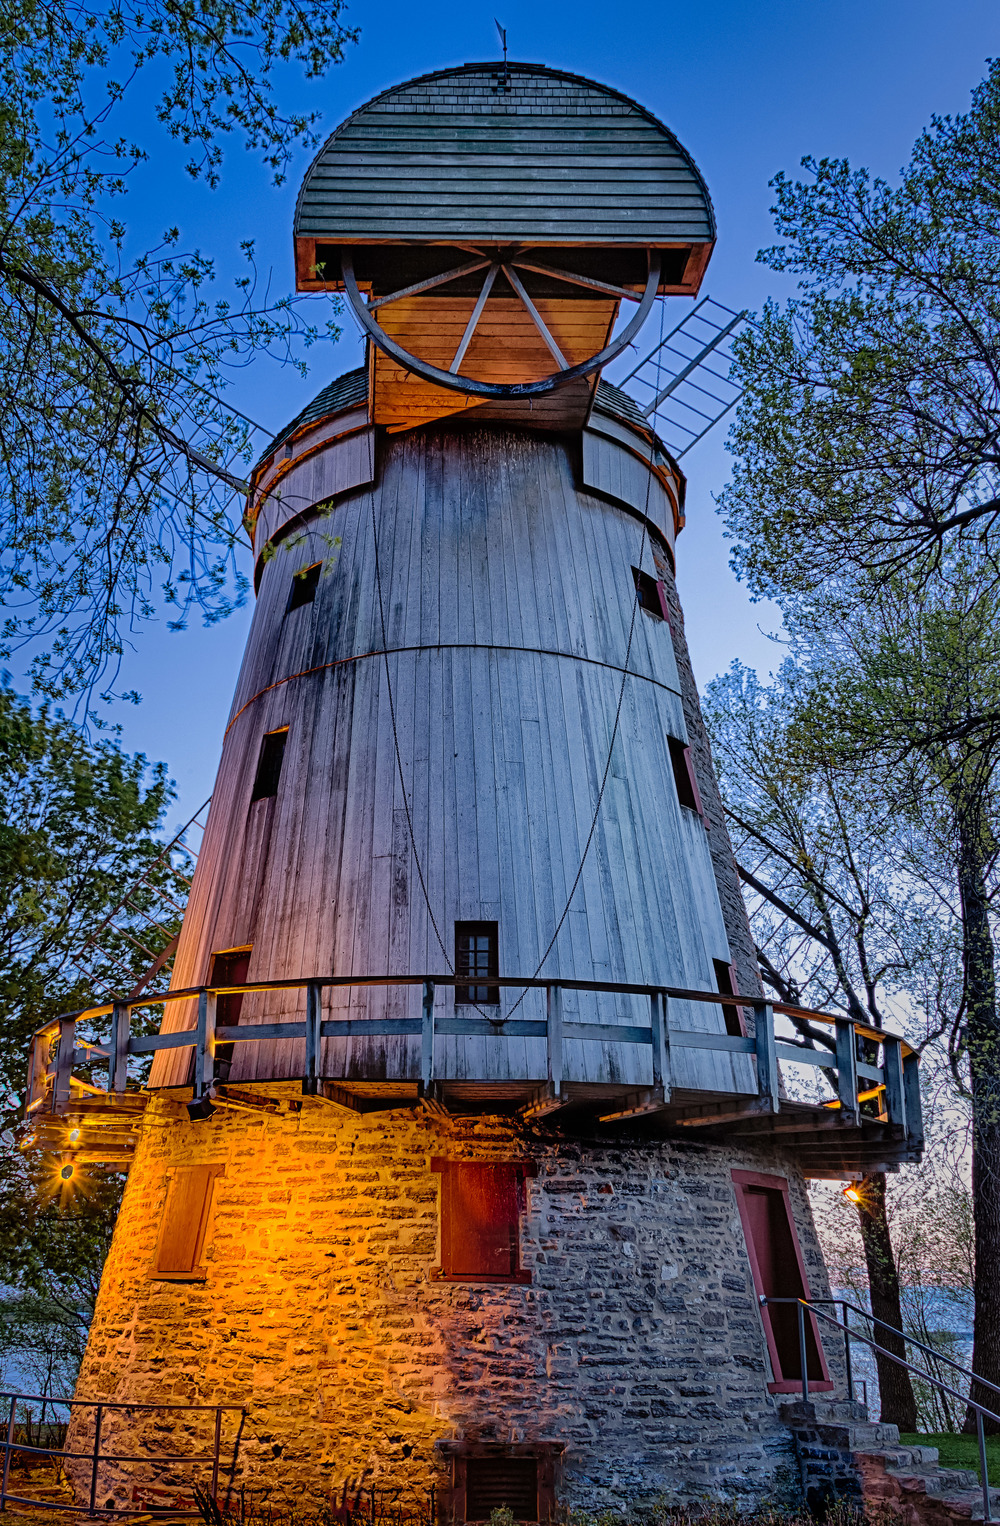 20140518_Windmill in Lachine_IMG_4108_HDR-M-M.jpg